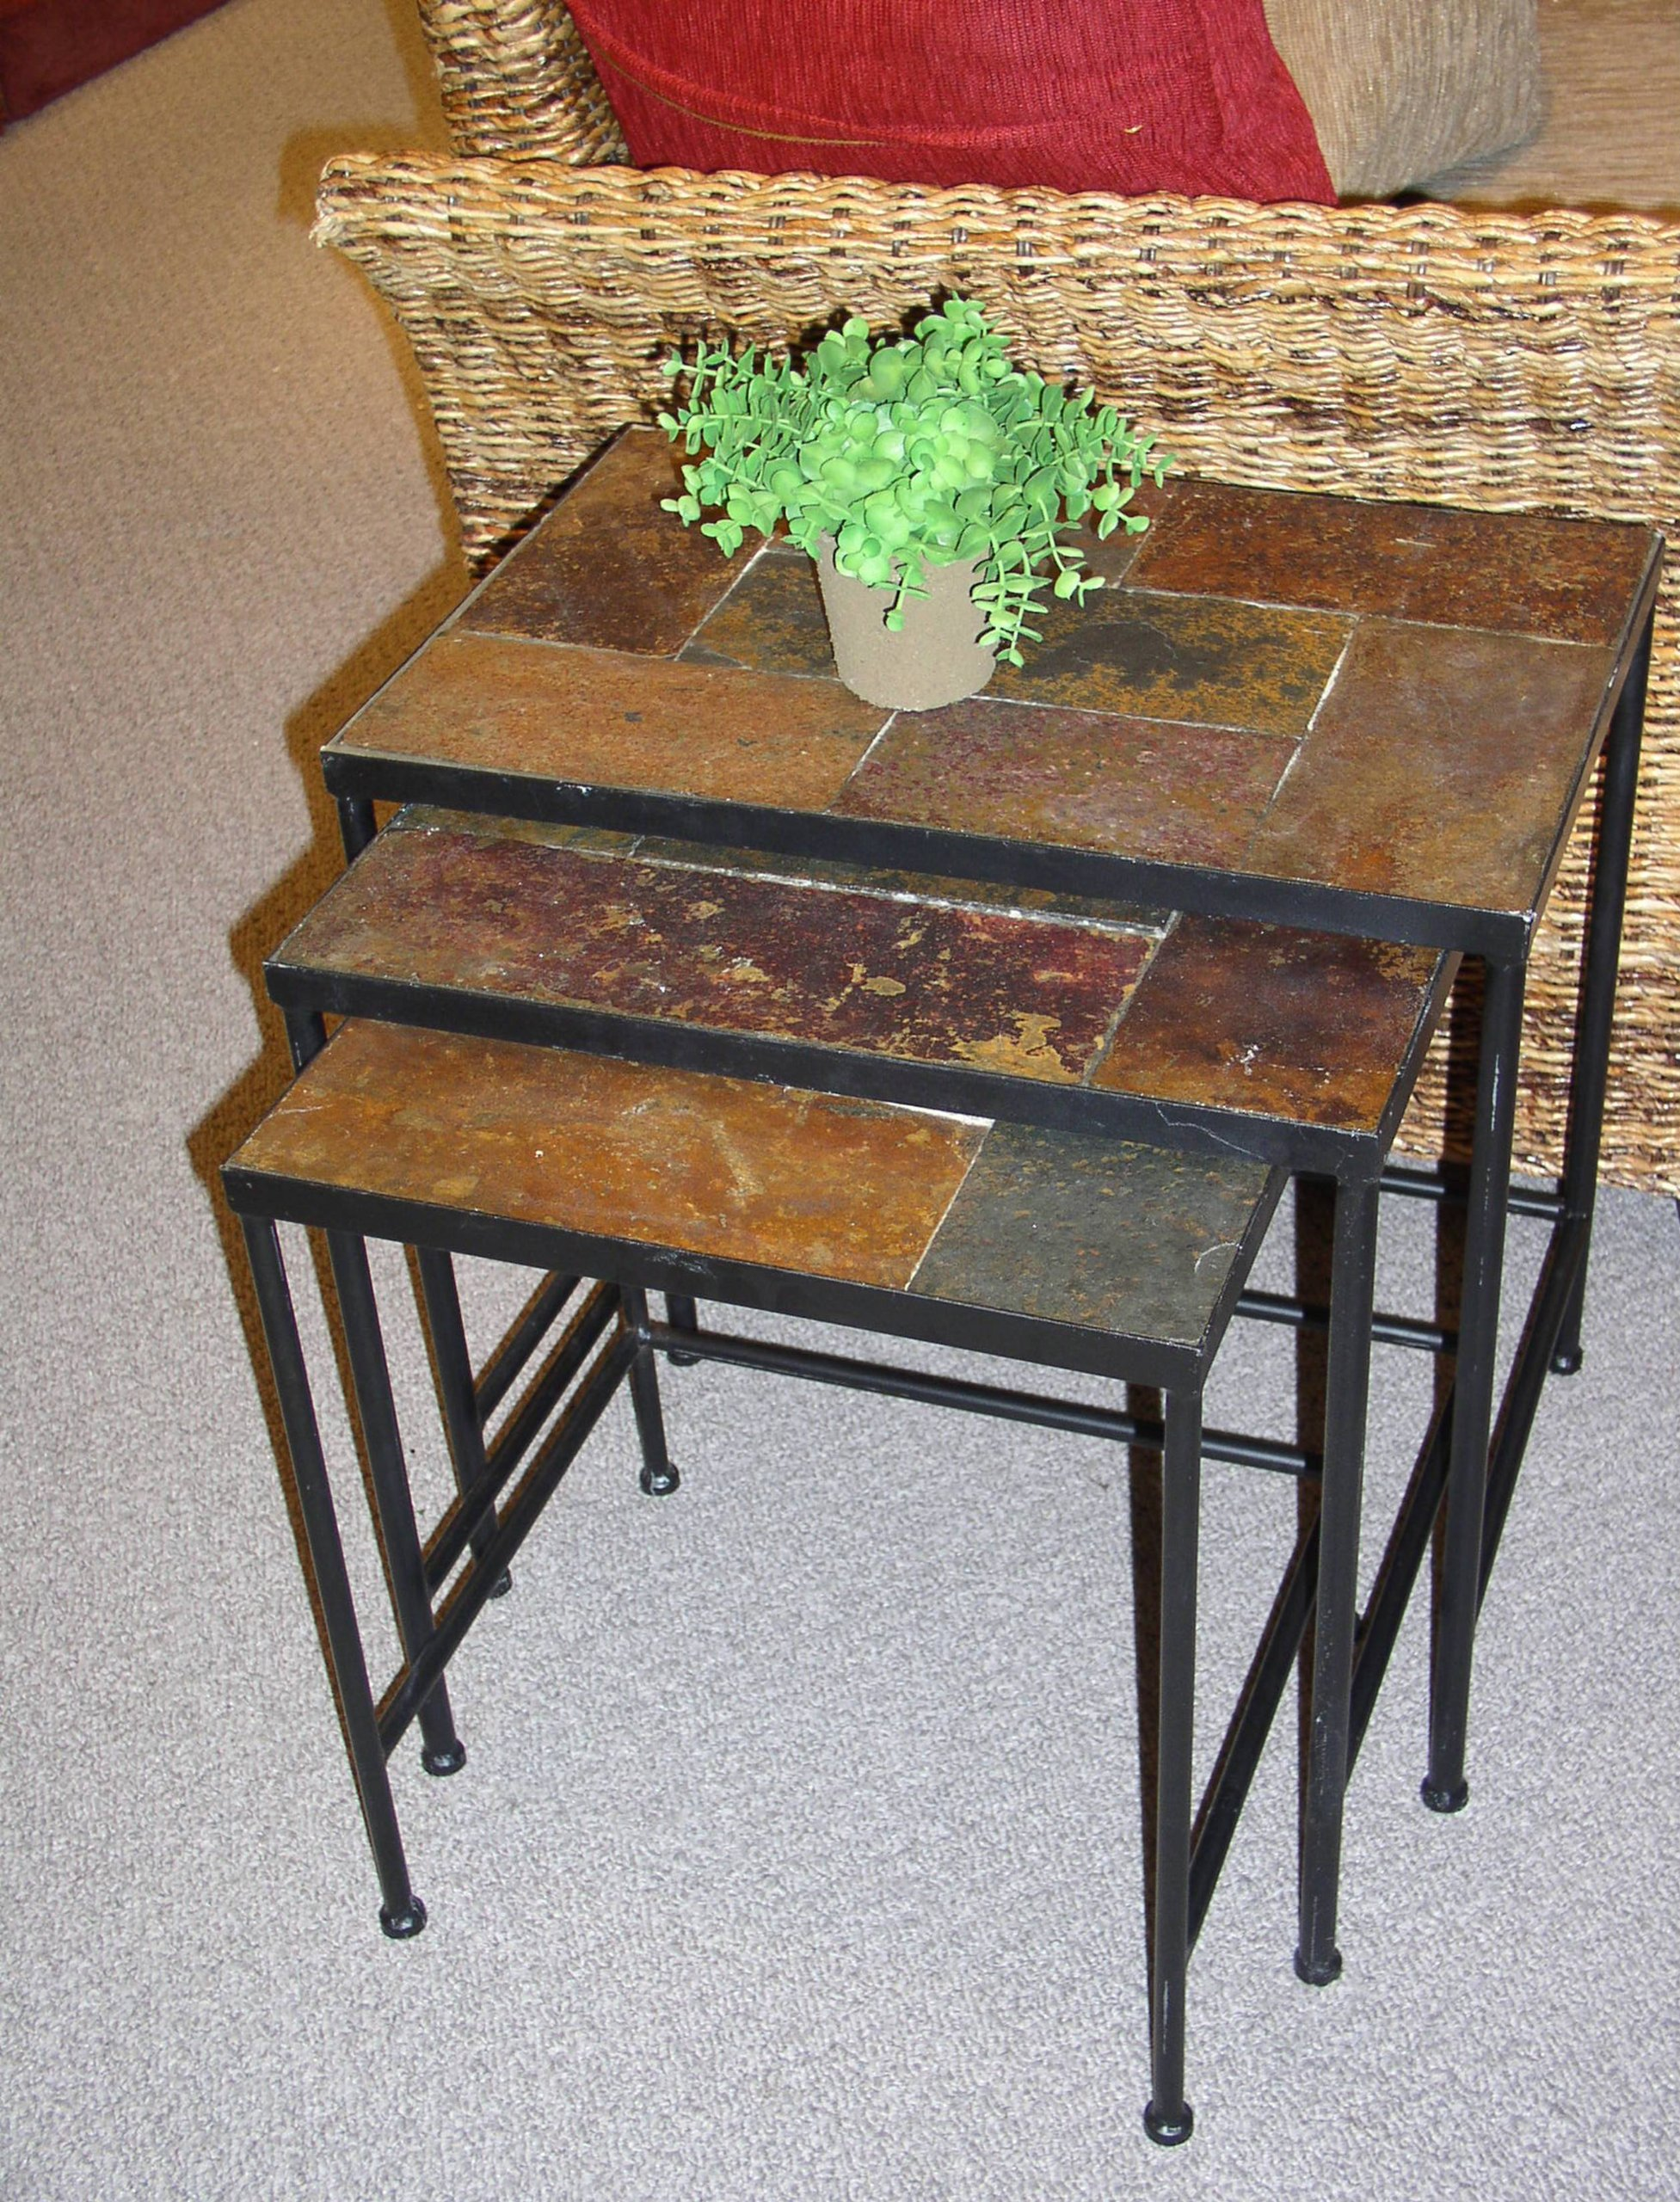 4D Concepts 3-Piece Nesting Tables with Slate Tops, Metal/Slate by 4D Concepts